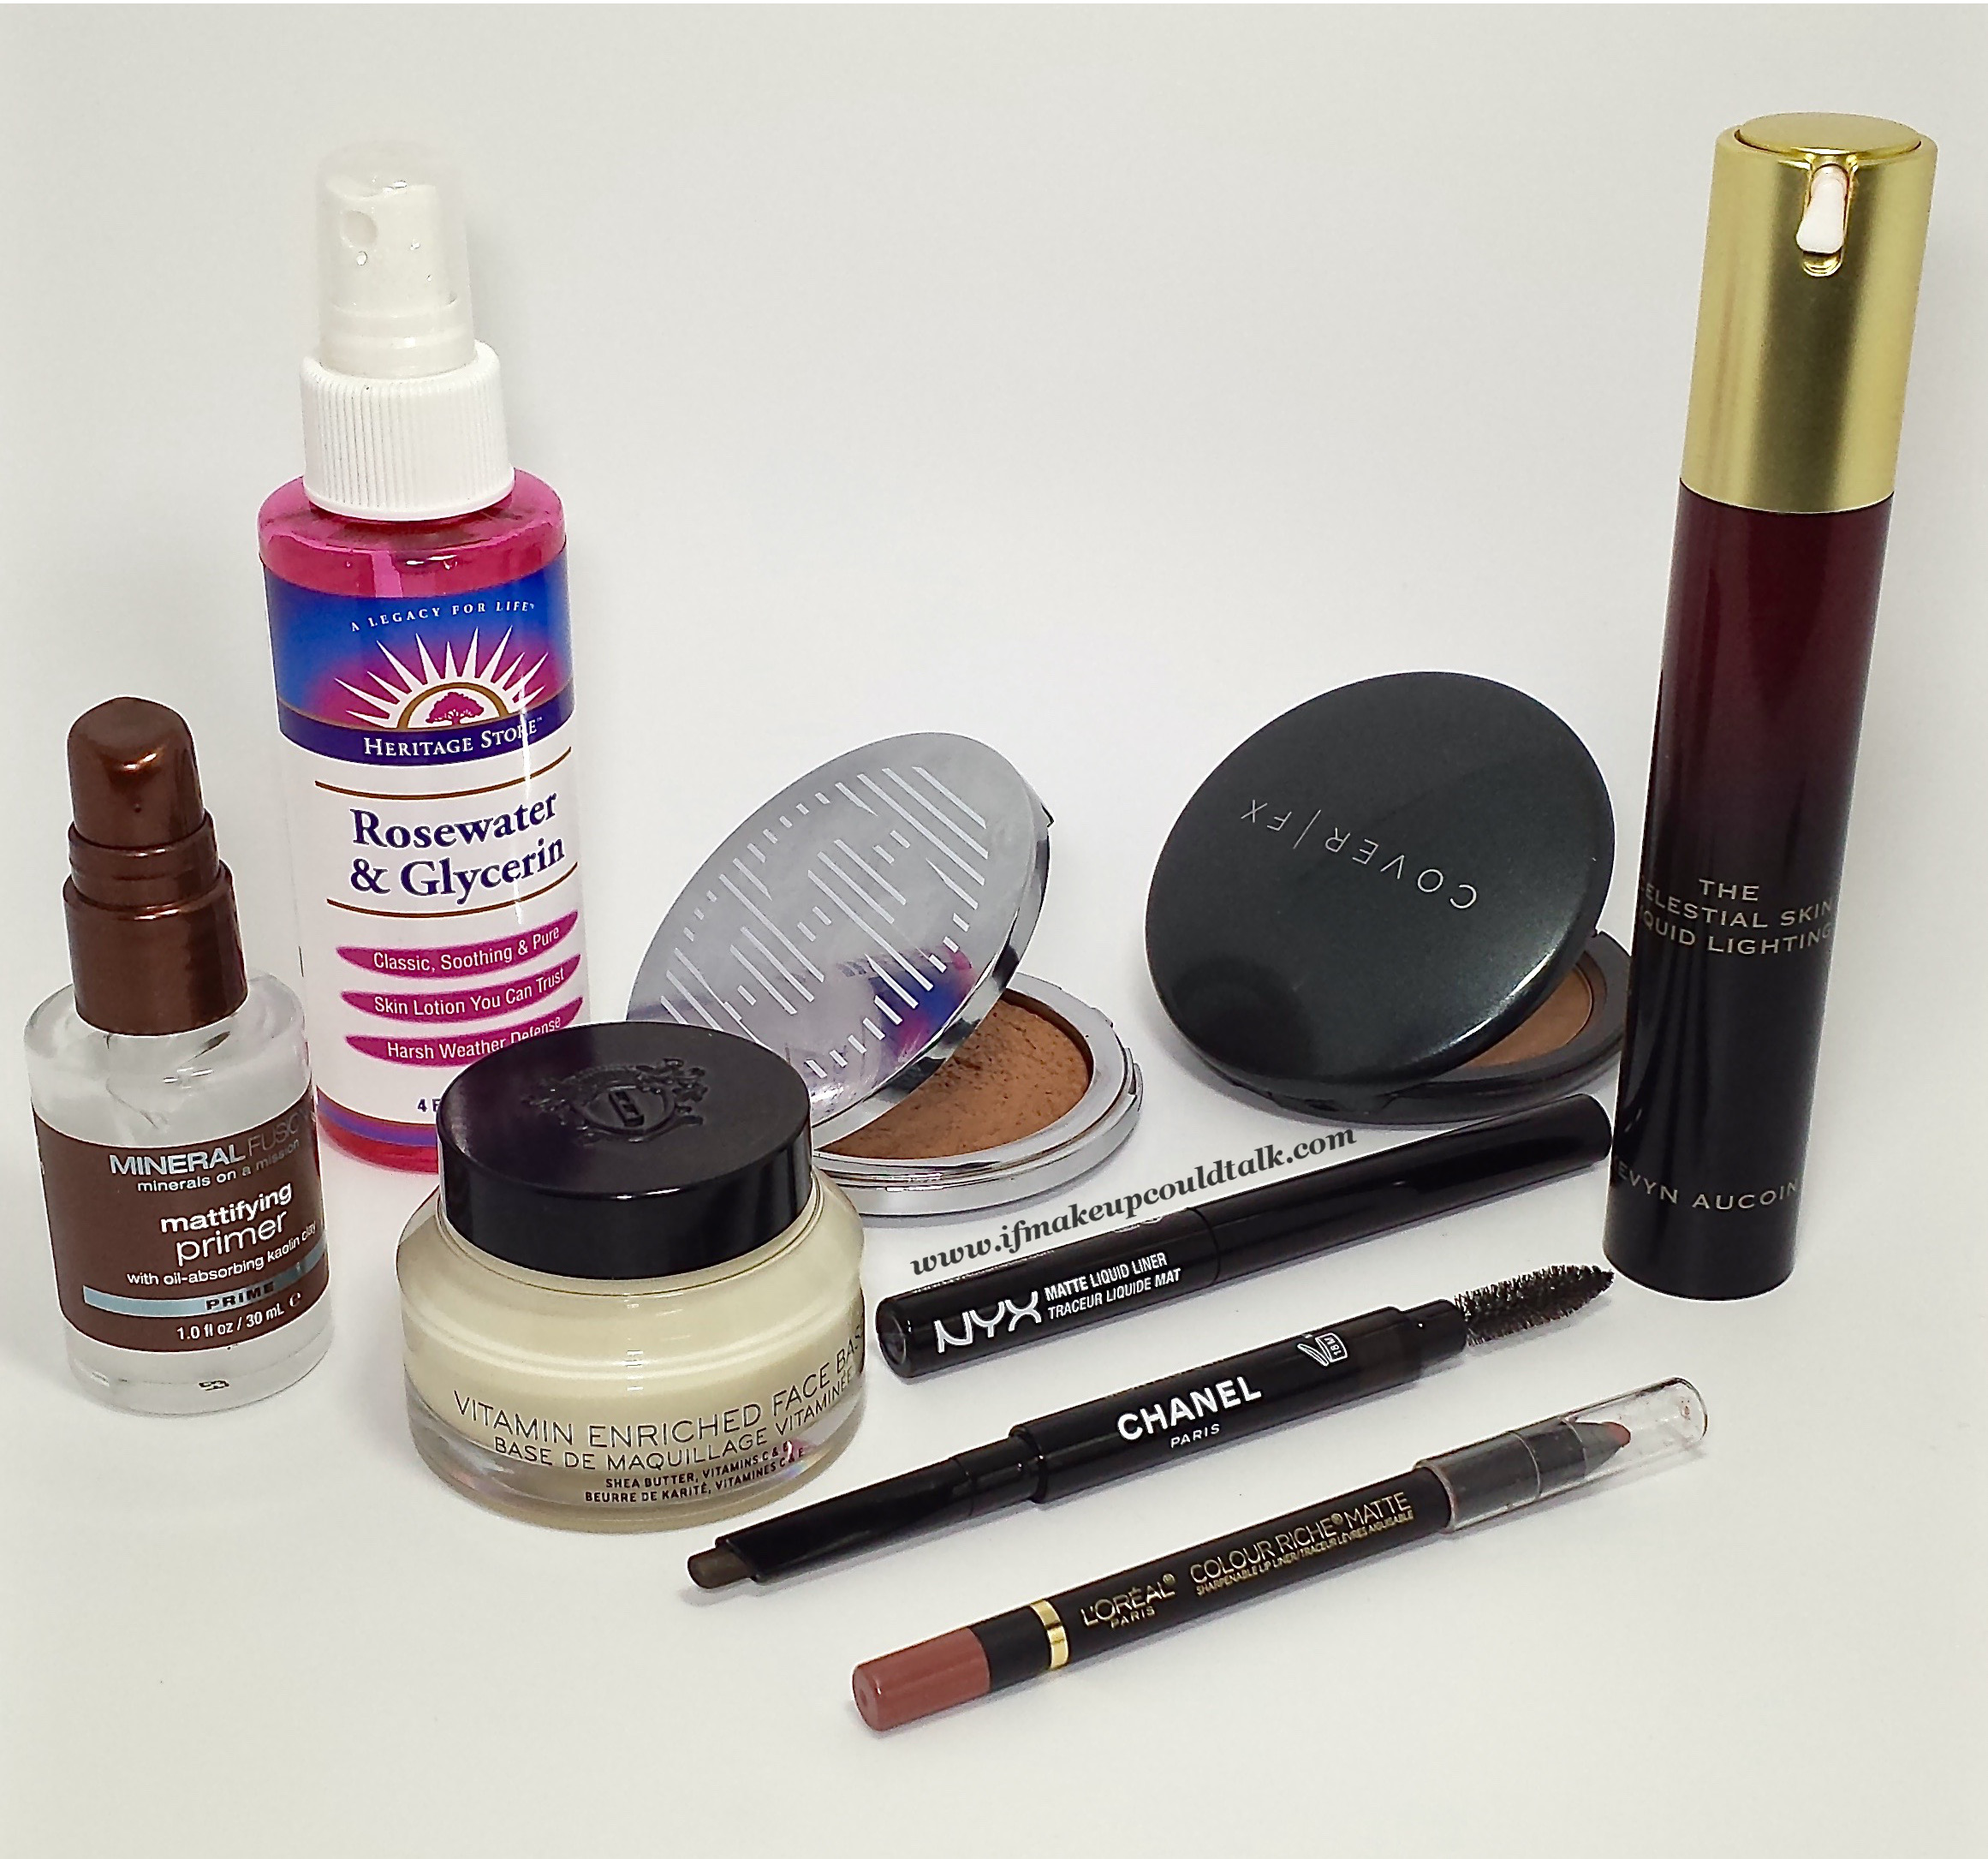 New Makeup Discoveries